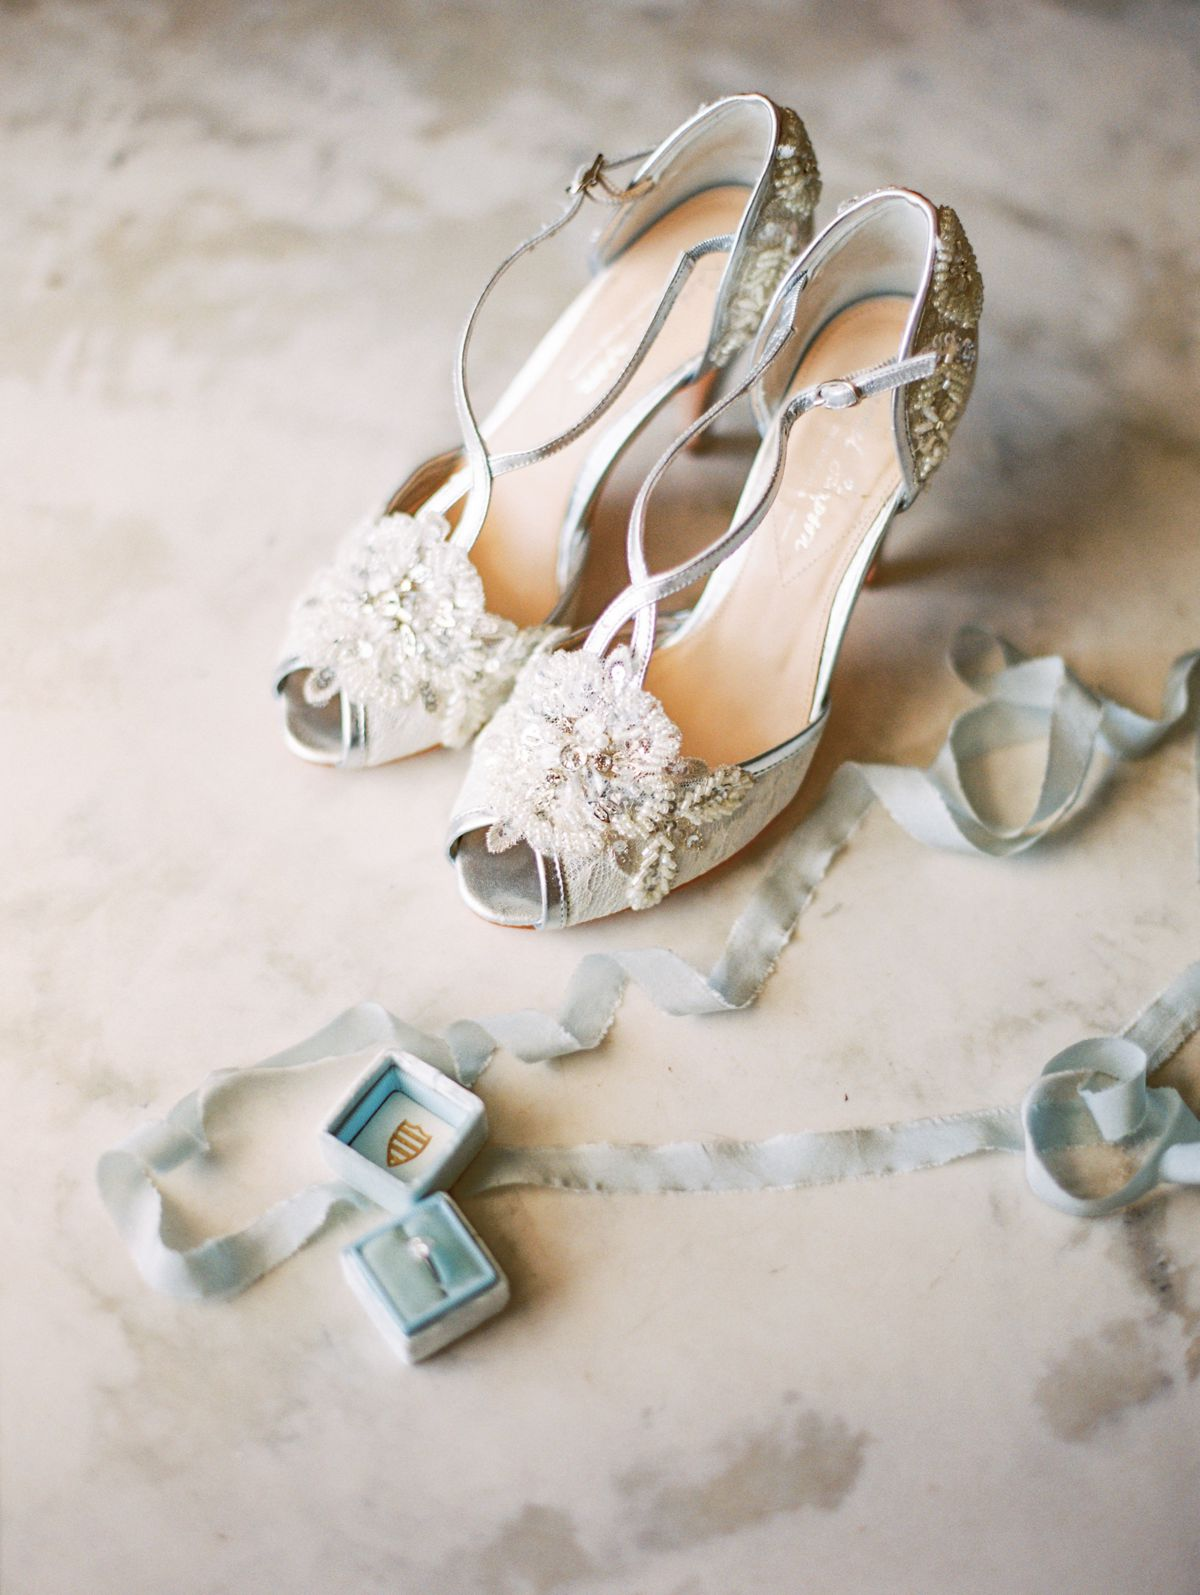 Wedding details at Cavo Ventus, Santorini